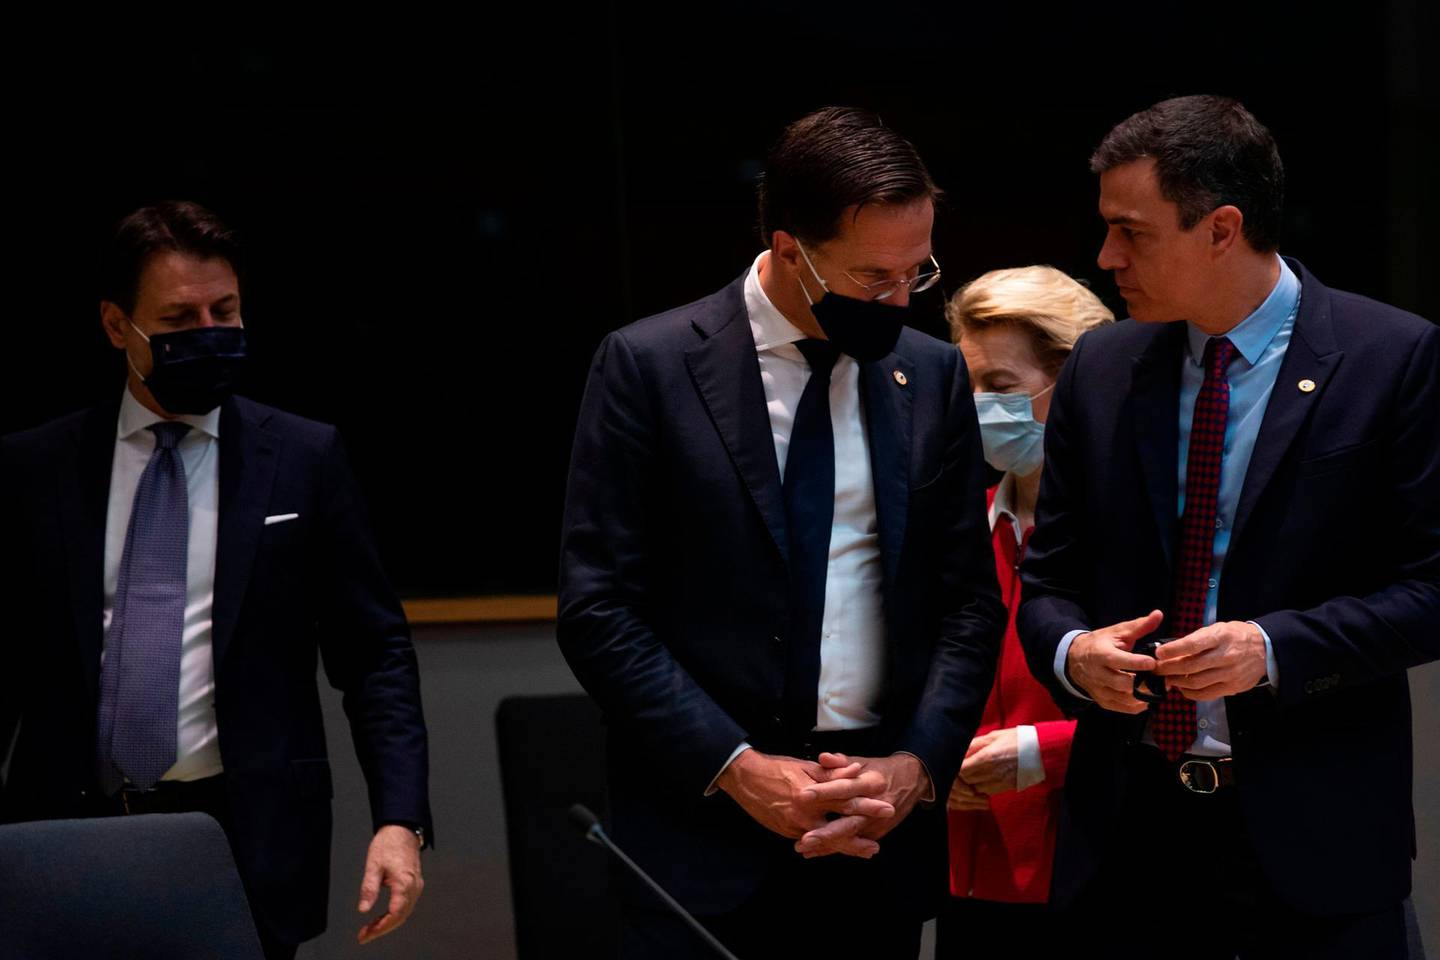 Spain's Prime Minister Pedro Sanchez (R) speaks with Netherlands' Prime Minister Mark Rutte prior the start of the EU summit at the European Council building in Brussels, on July 18, 2020, as the leaders of the European Union hold their first face-to-face summit over a post-virus economic rescue plan. The EU has been plunged into a historic economic crunch by the coronavirus crisis, and EU officials have drawn up plans for a huge stimulus package to lead their countries out of lockdown.  / AFP / POOL / Francisco Seco